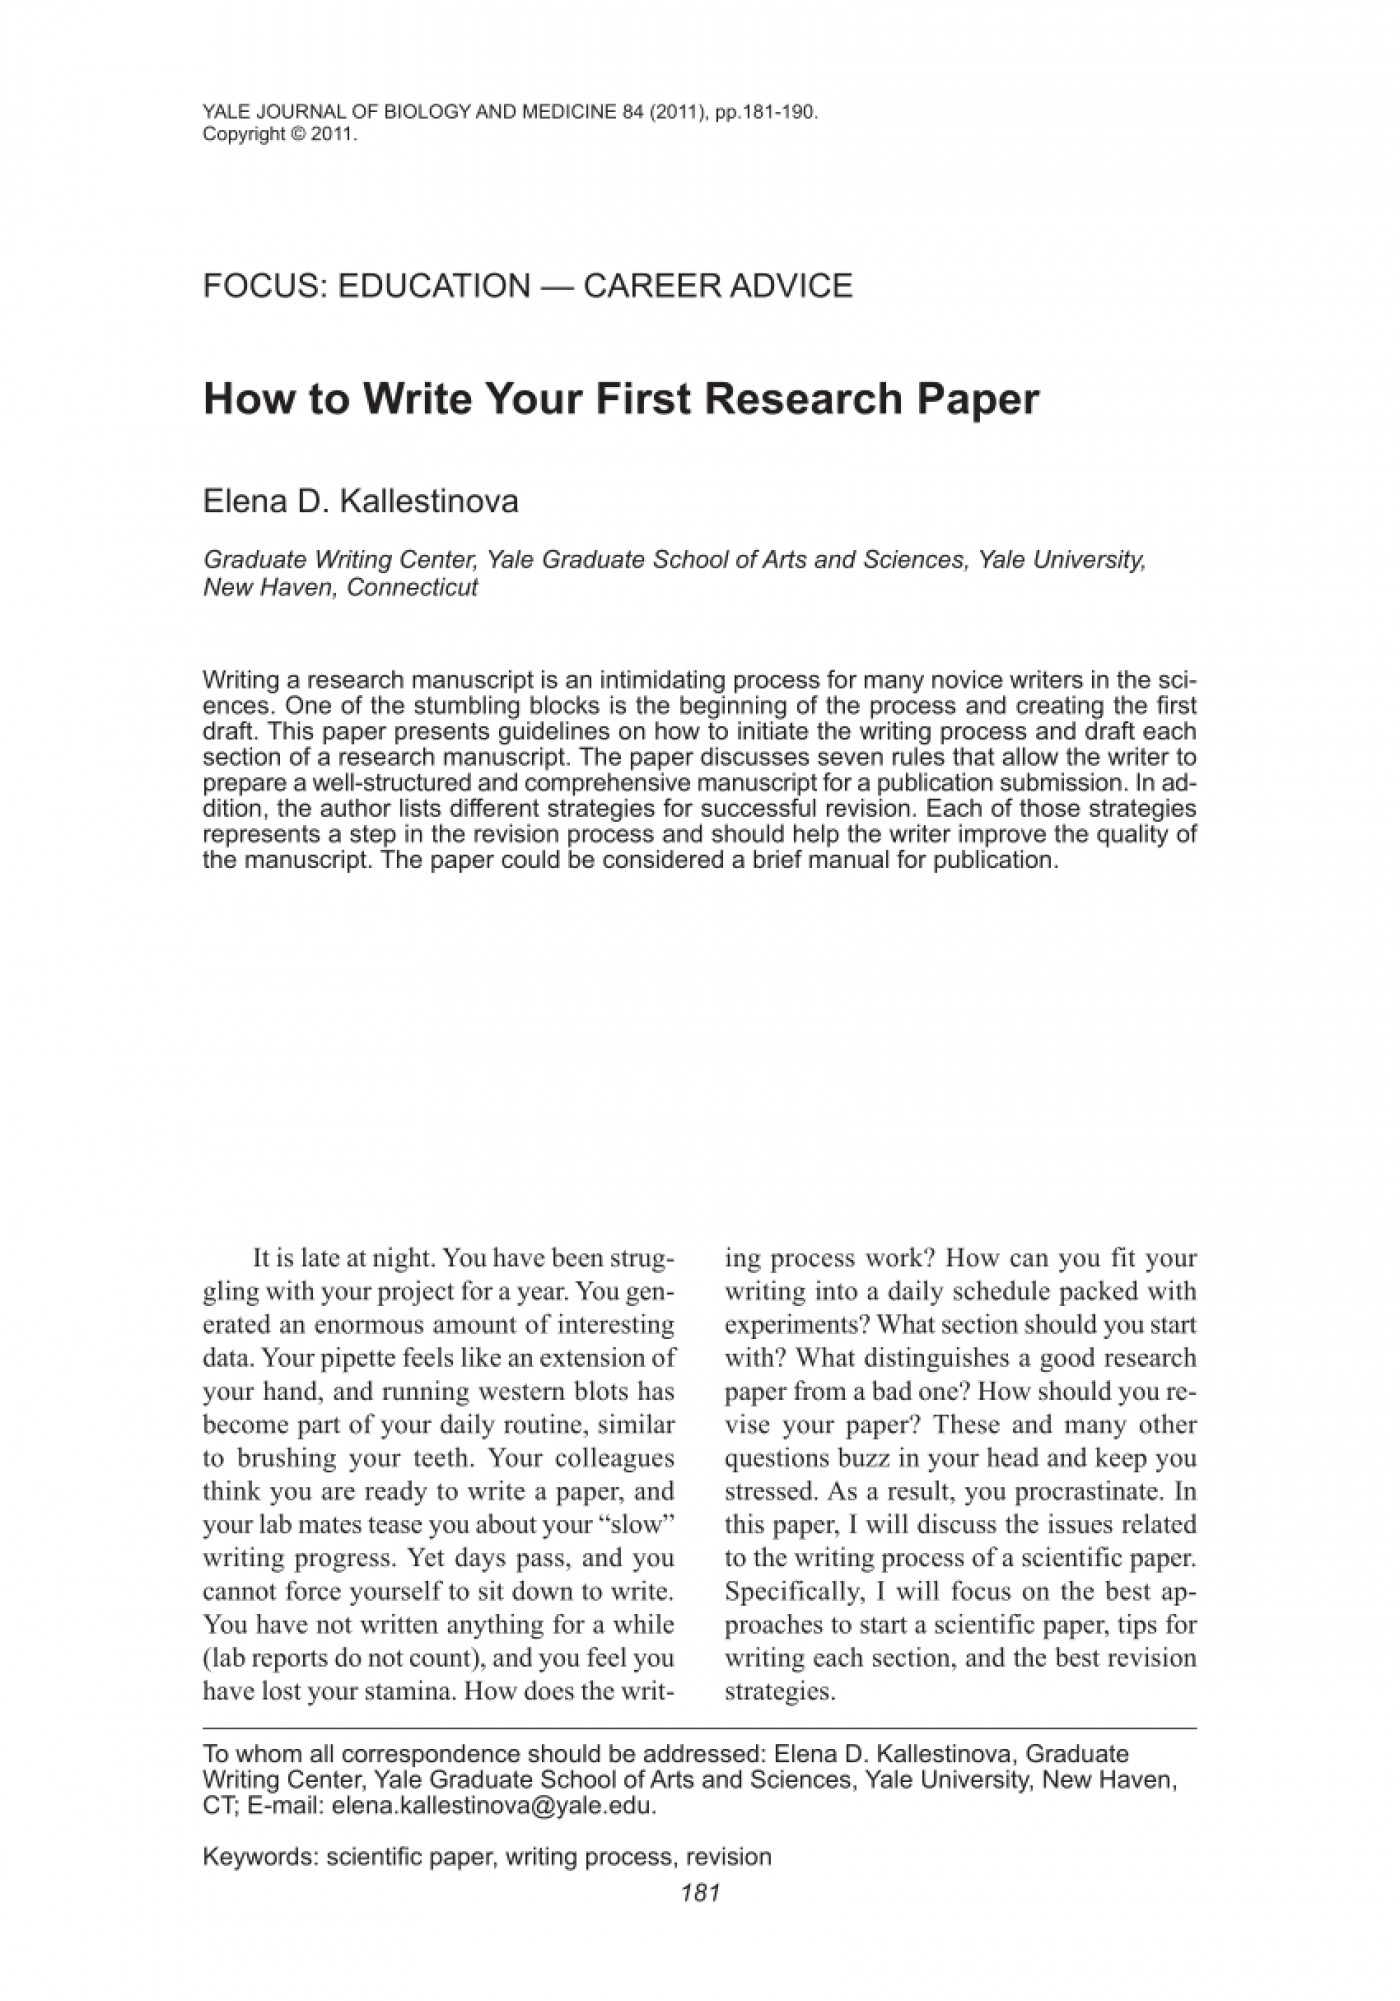 003 How To Write Research Paper Frightening A Thesis Driven Proposal Apa 1400